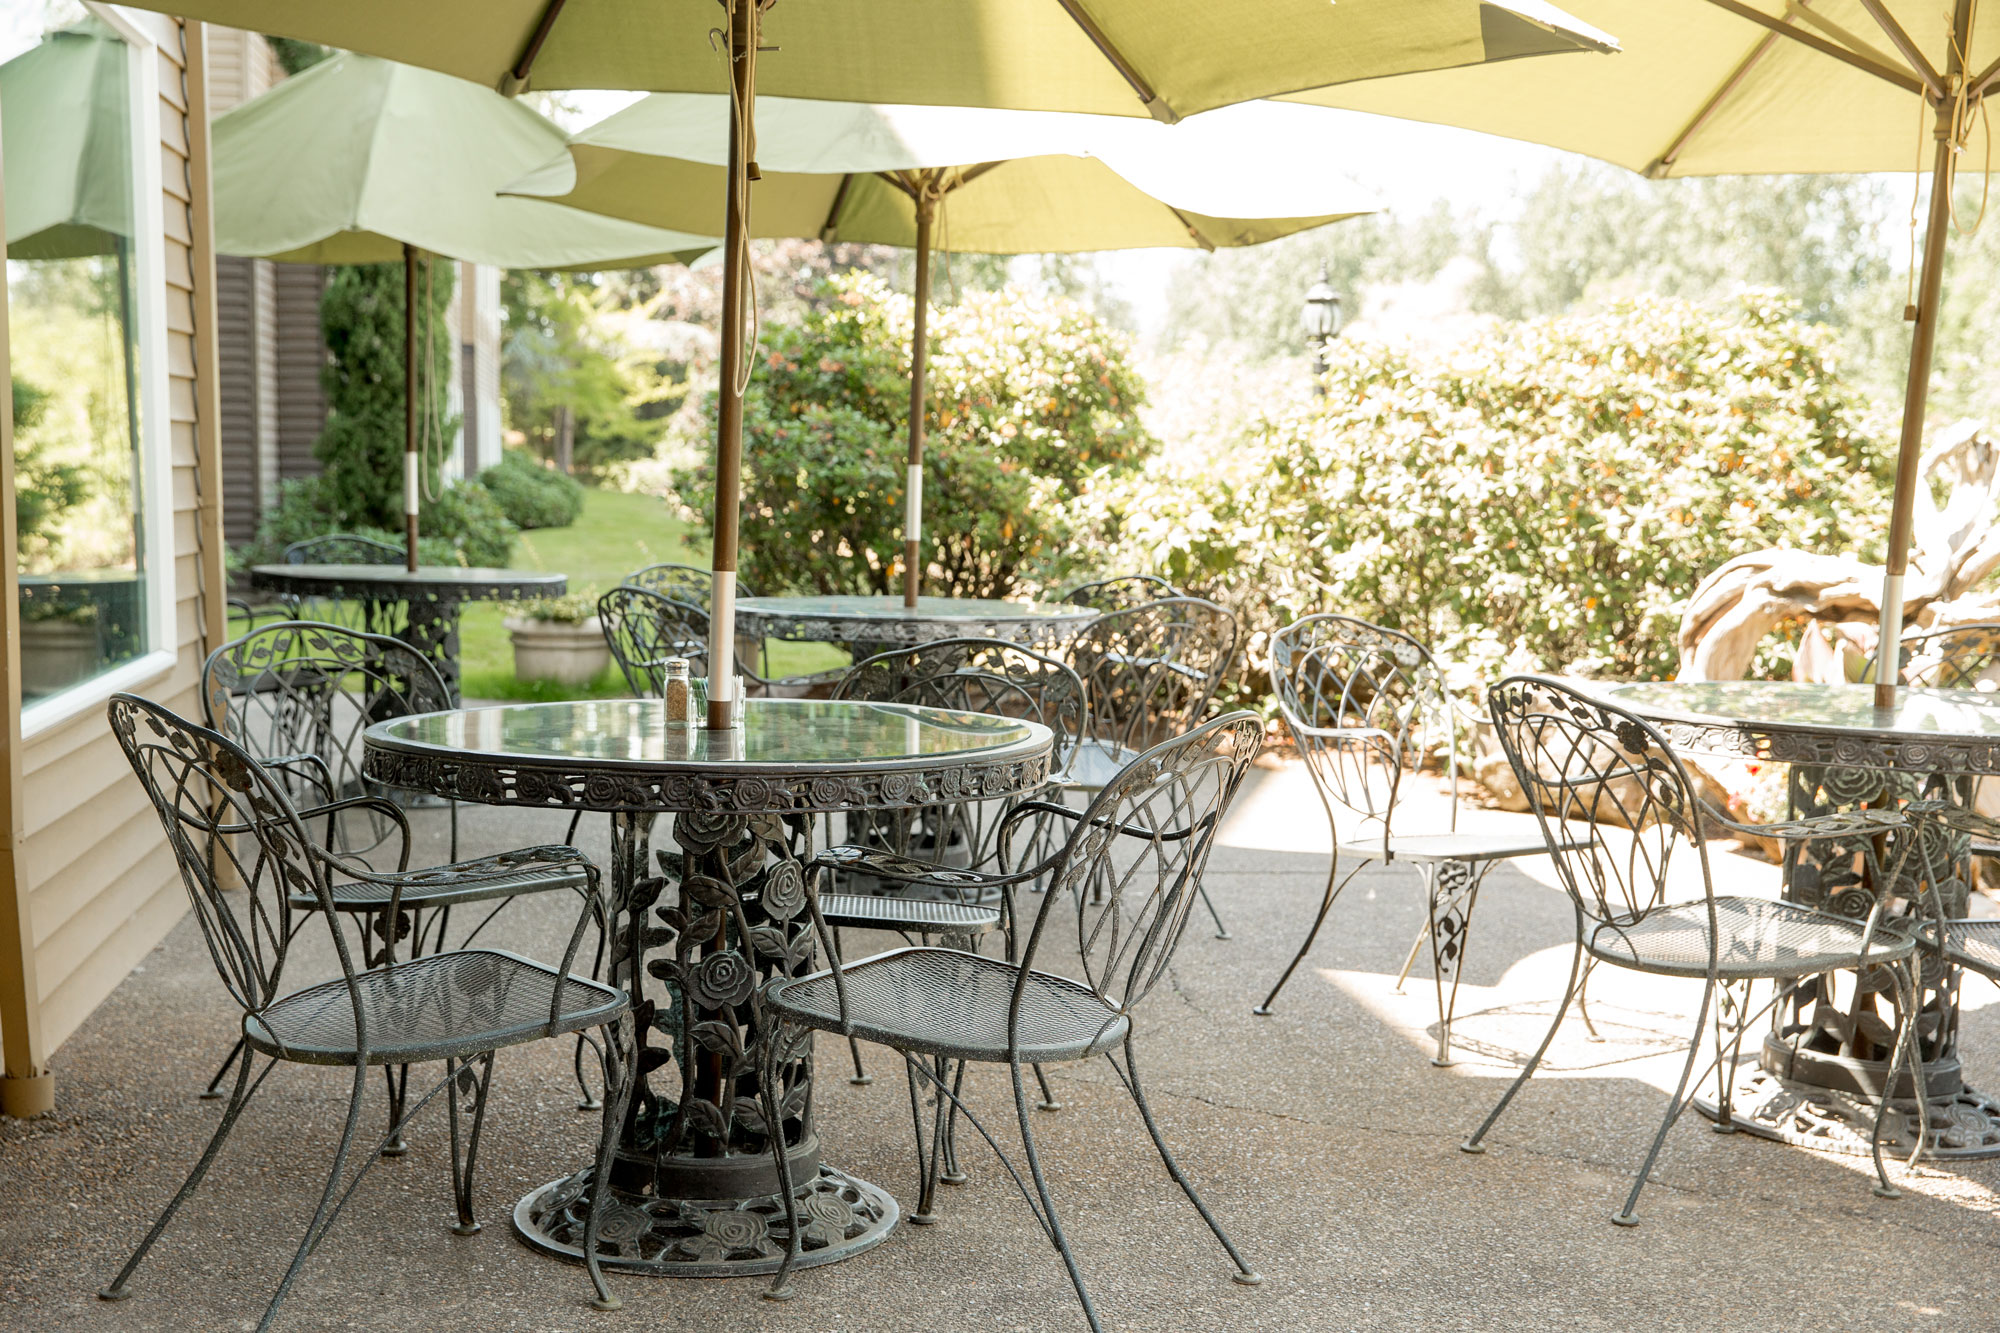 view of outdoor dining space on patio